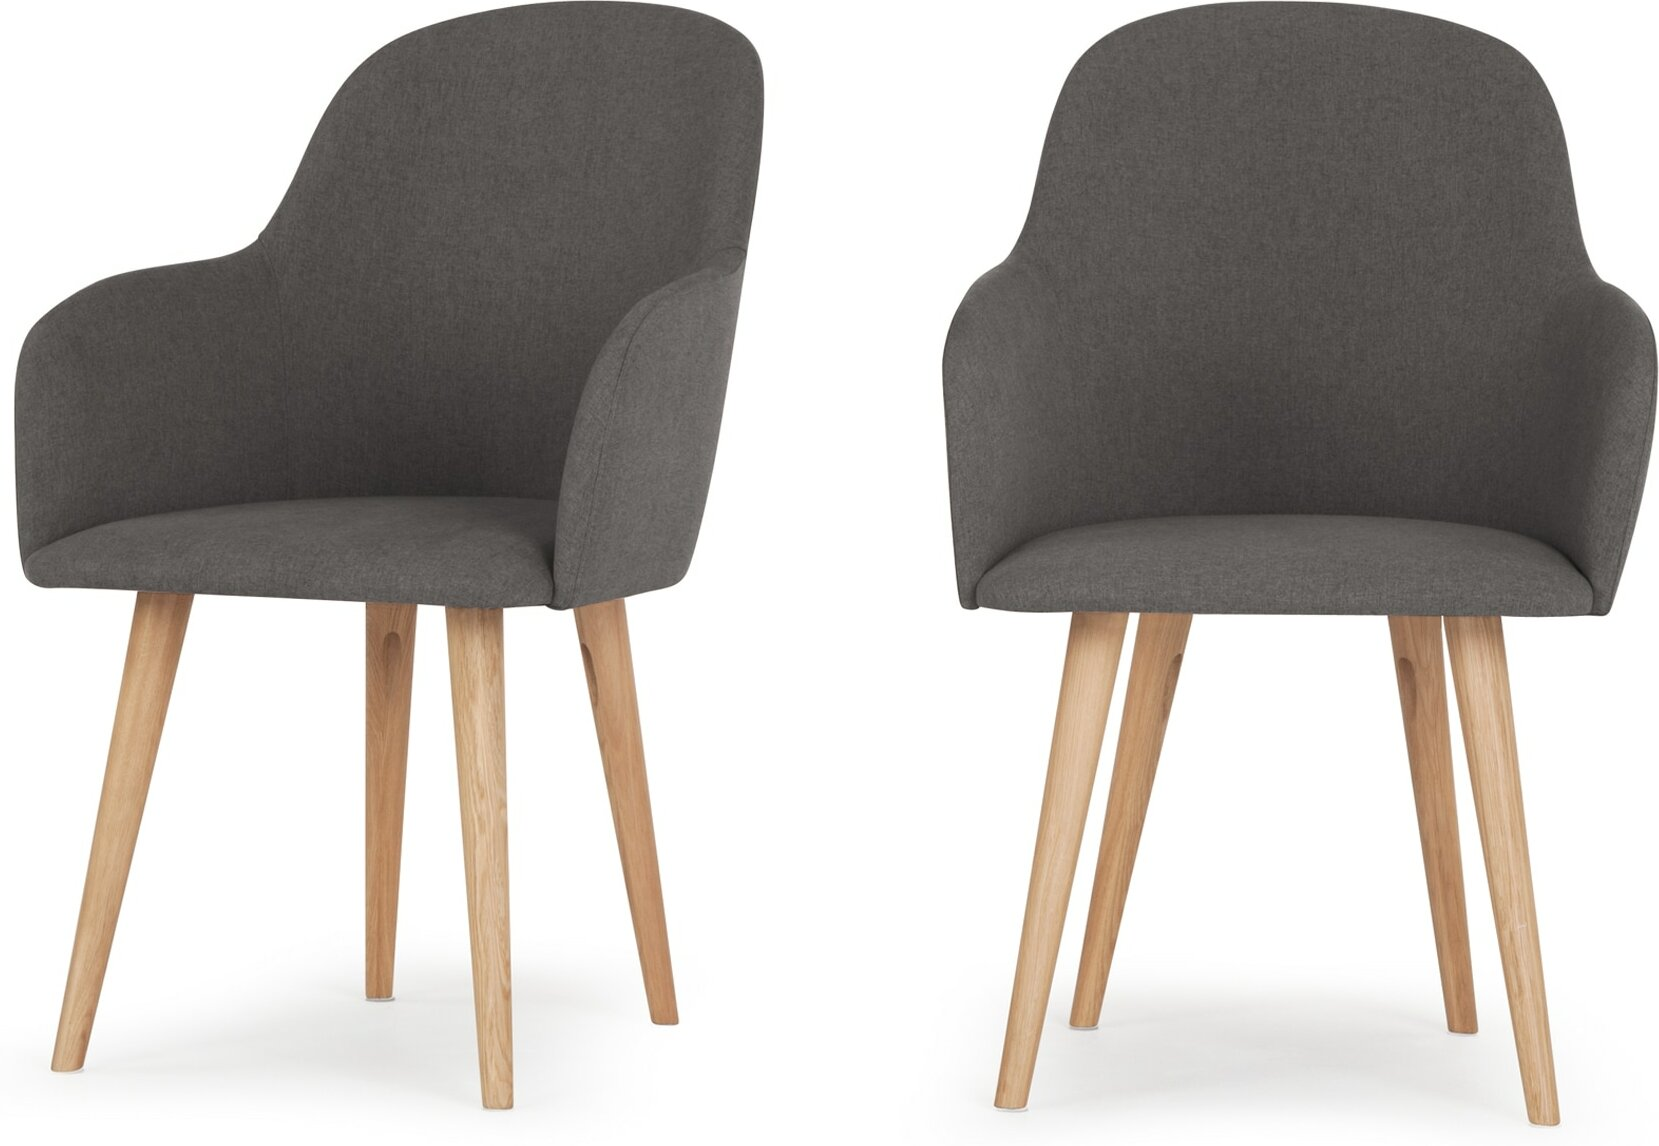 2 x Stig High Back Carver Dining Chairs Manhattan Grey and Oak